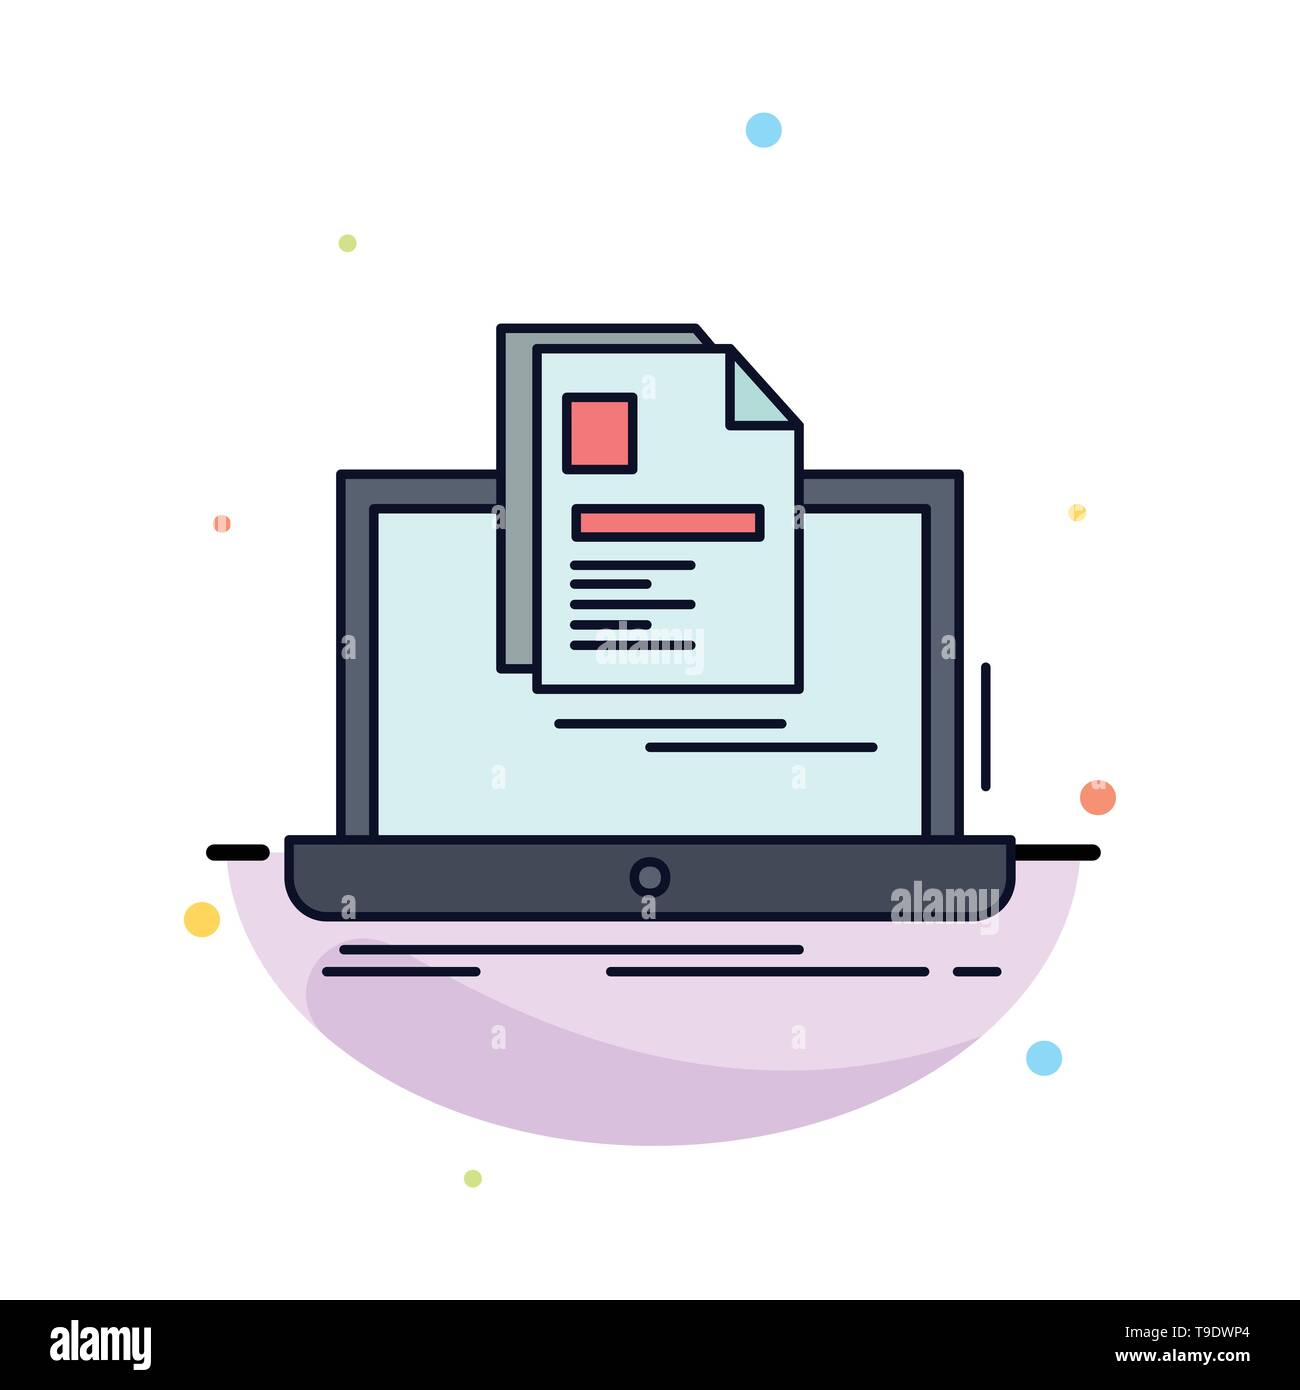 Checking Account Stock Vector Images - Alamy